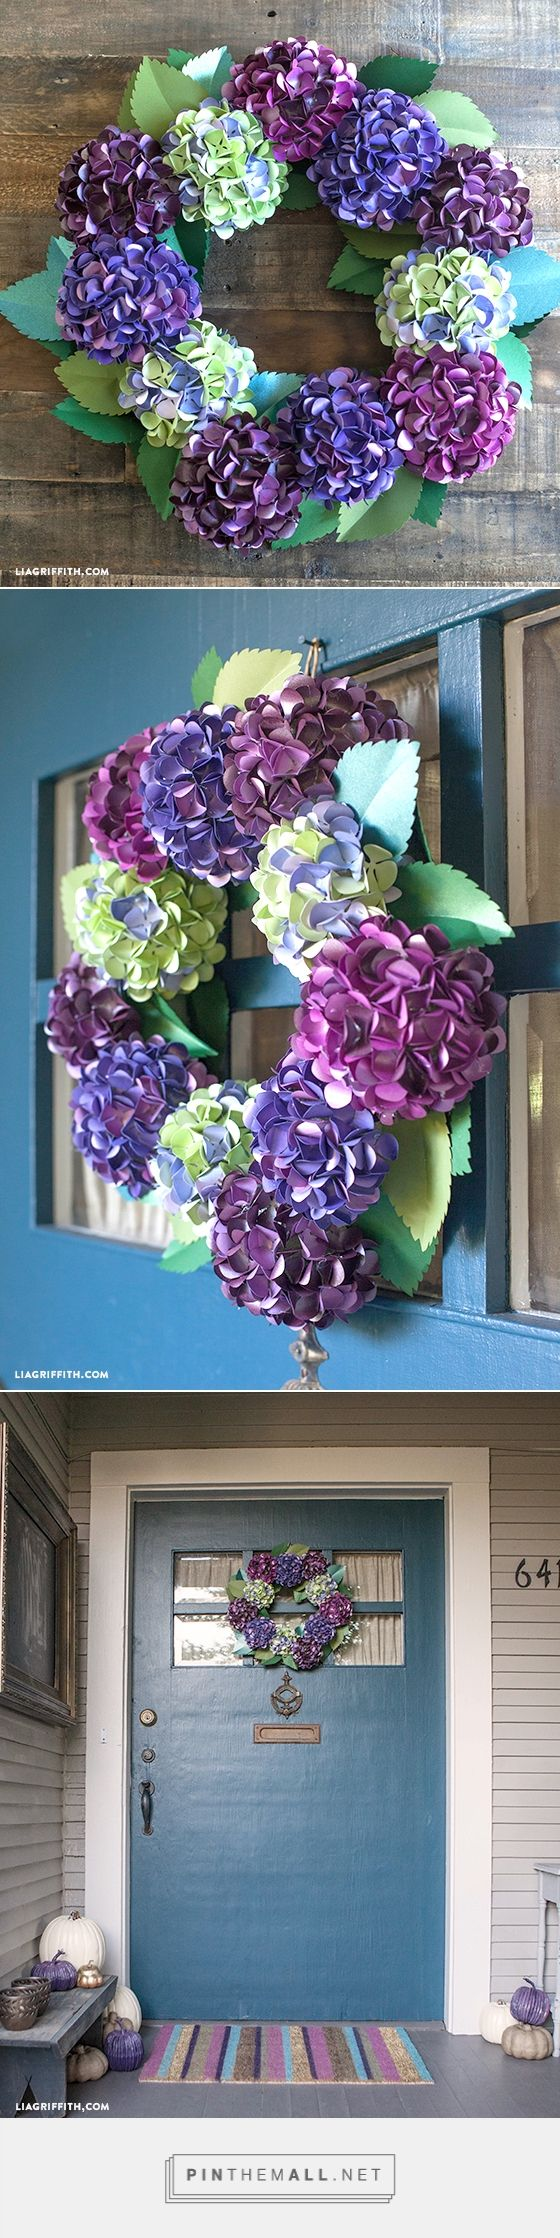 Diy Paper Hydrangea Wreath Arts And Crafts Pinterest Diy Paper